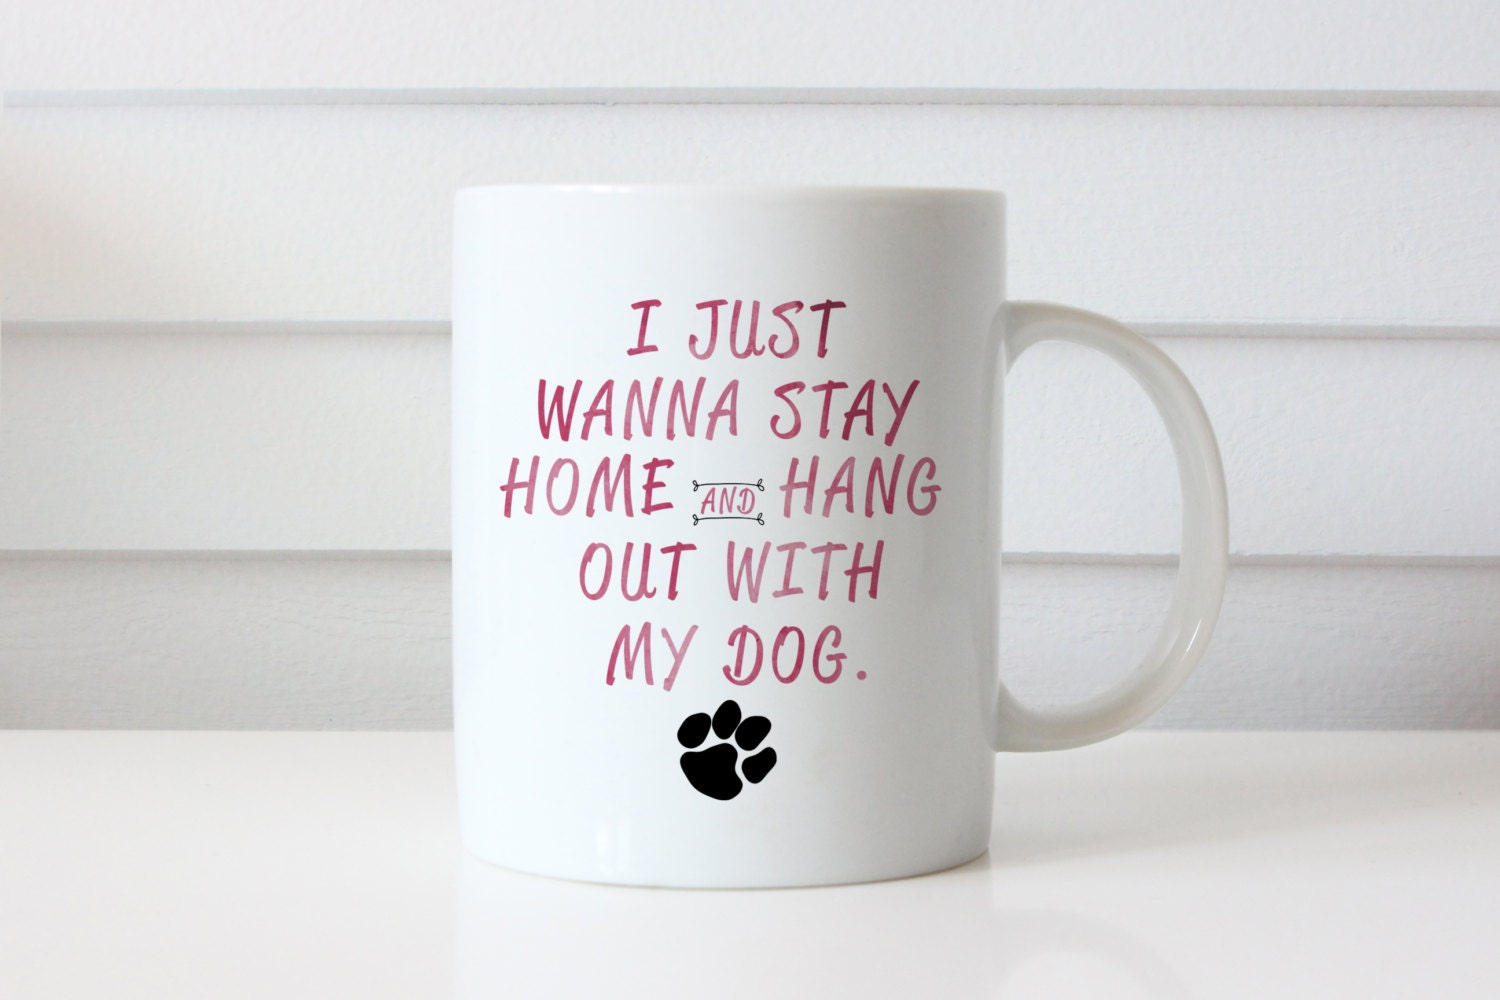 I Just Wanna Stay Home and Hang Out With My Dog Coffee Mug